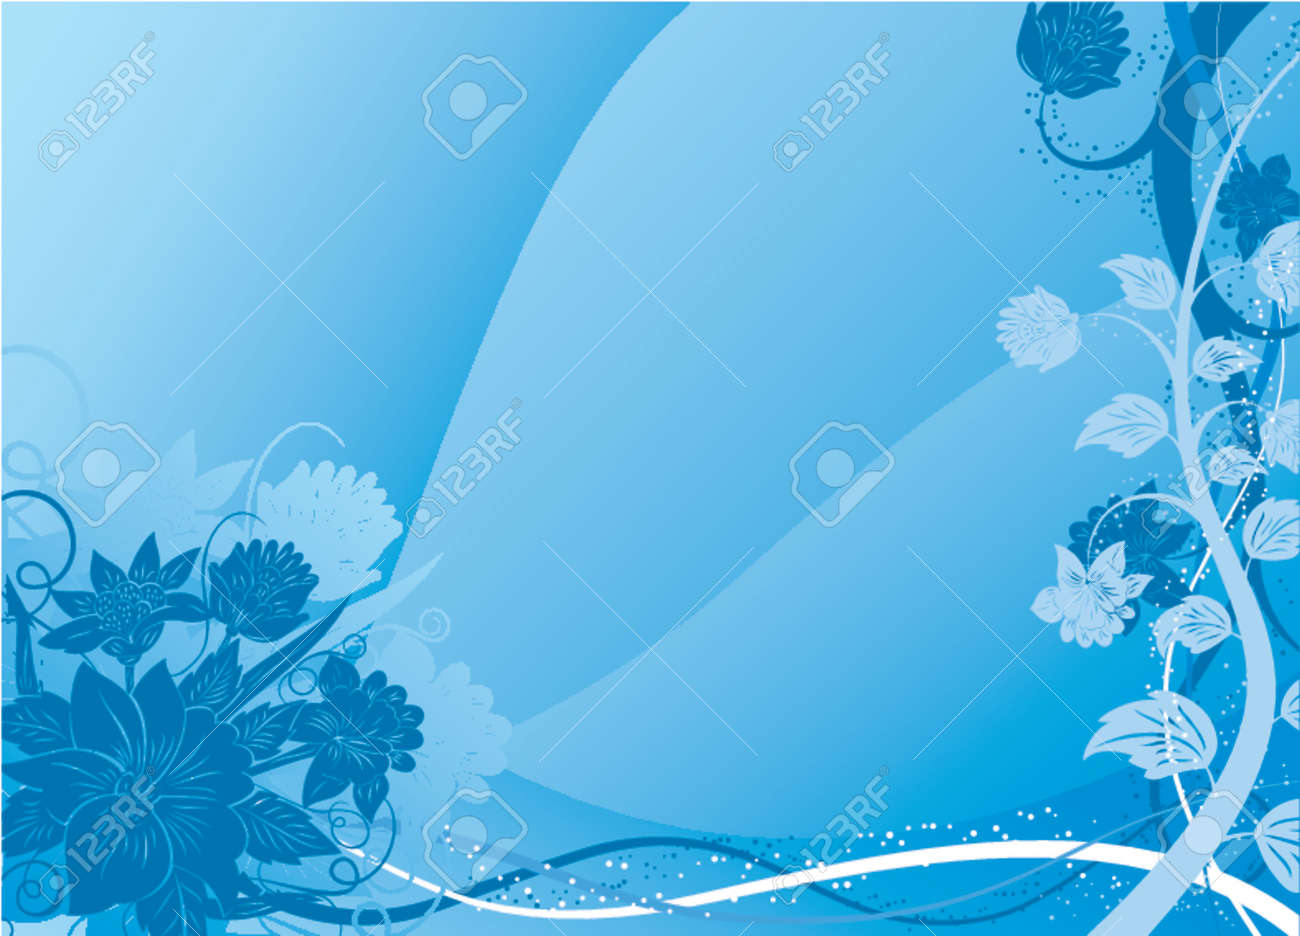 Floral background, vector illustration Stock Vector - 725707